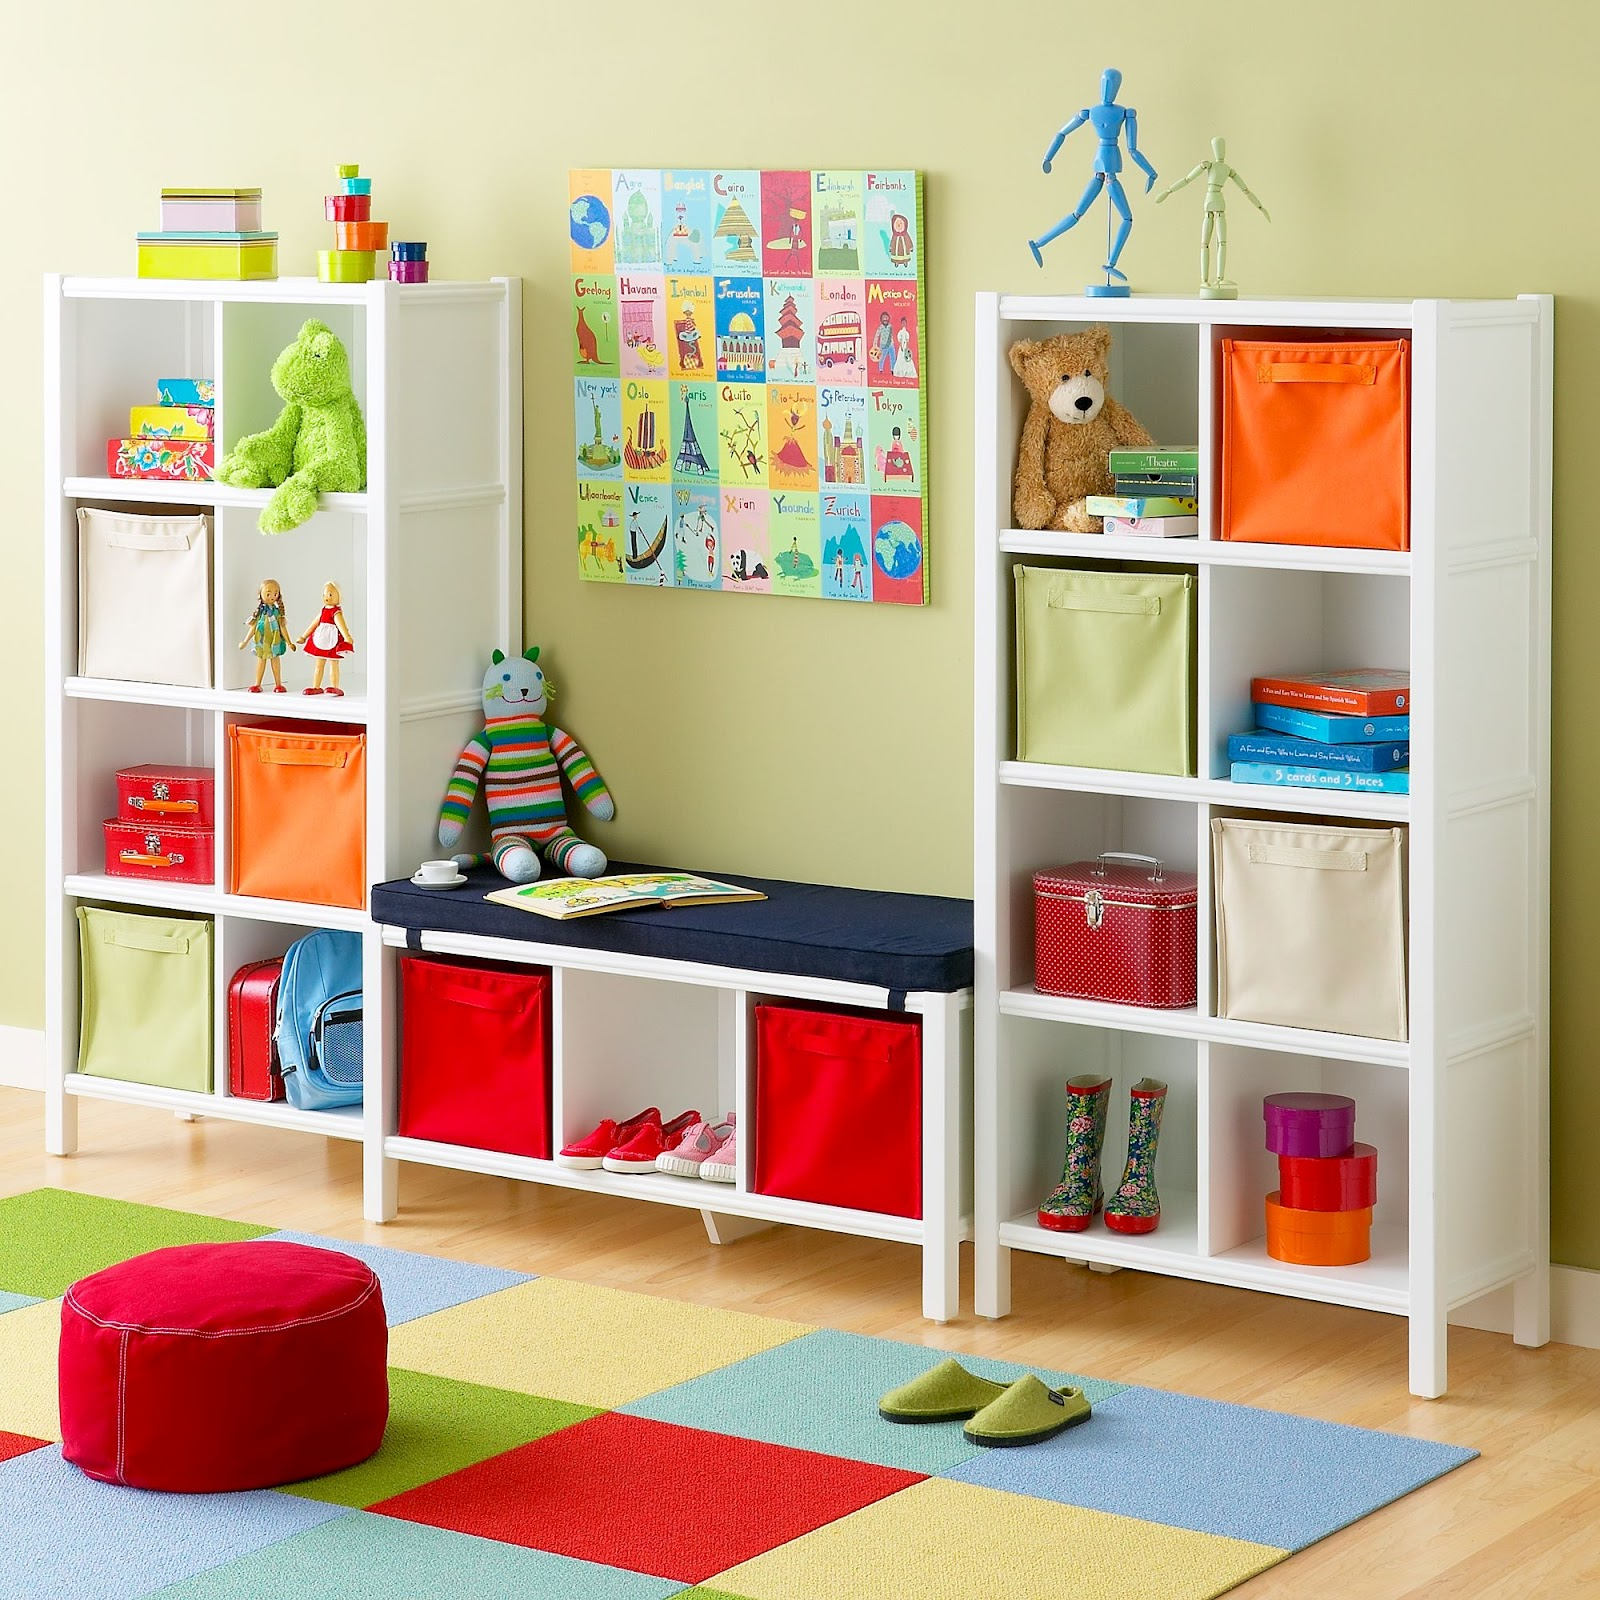 best ideas rugs area playroom childrens bedroom kids rug boy for toddler room bedrooms